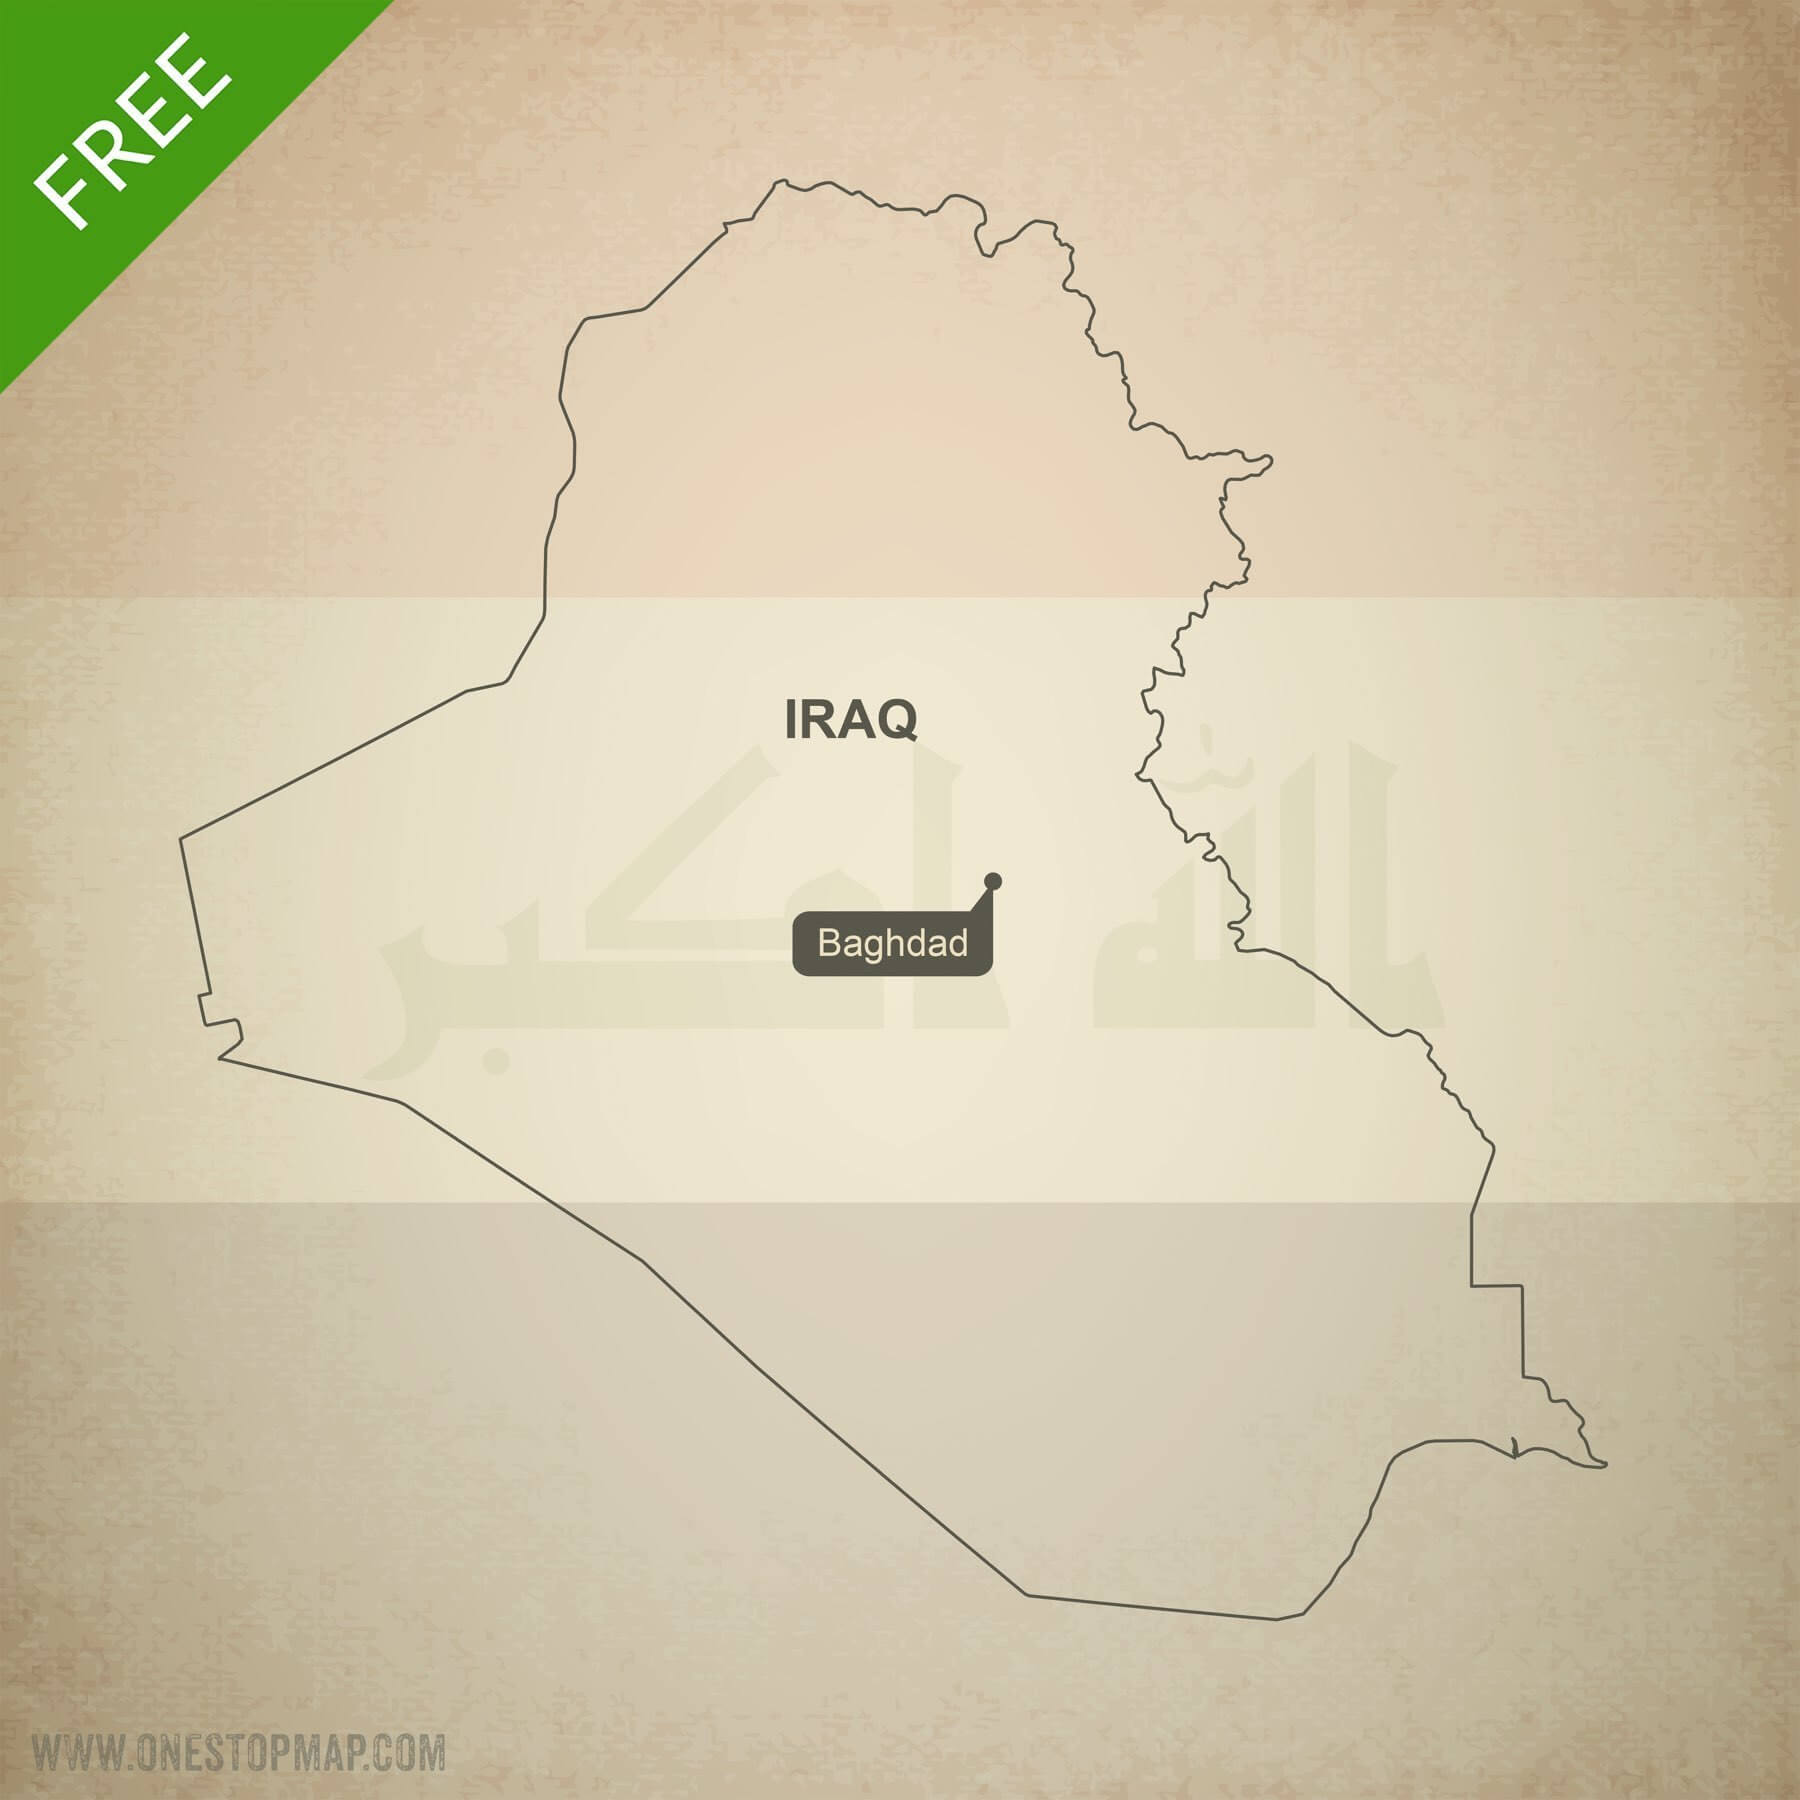 Free Vector Map of Iraq Outline   One Stop Map Map of Iraq outline